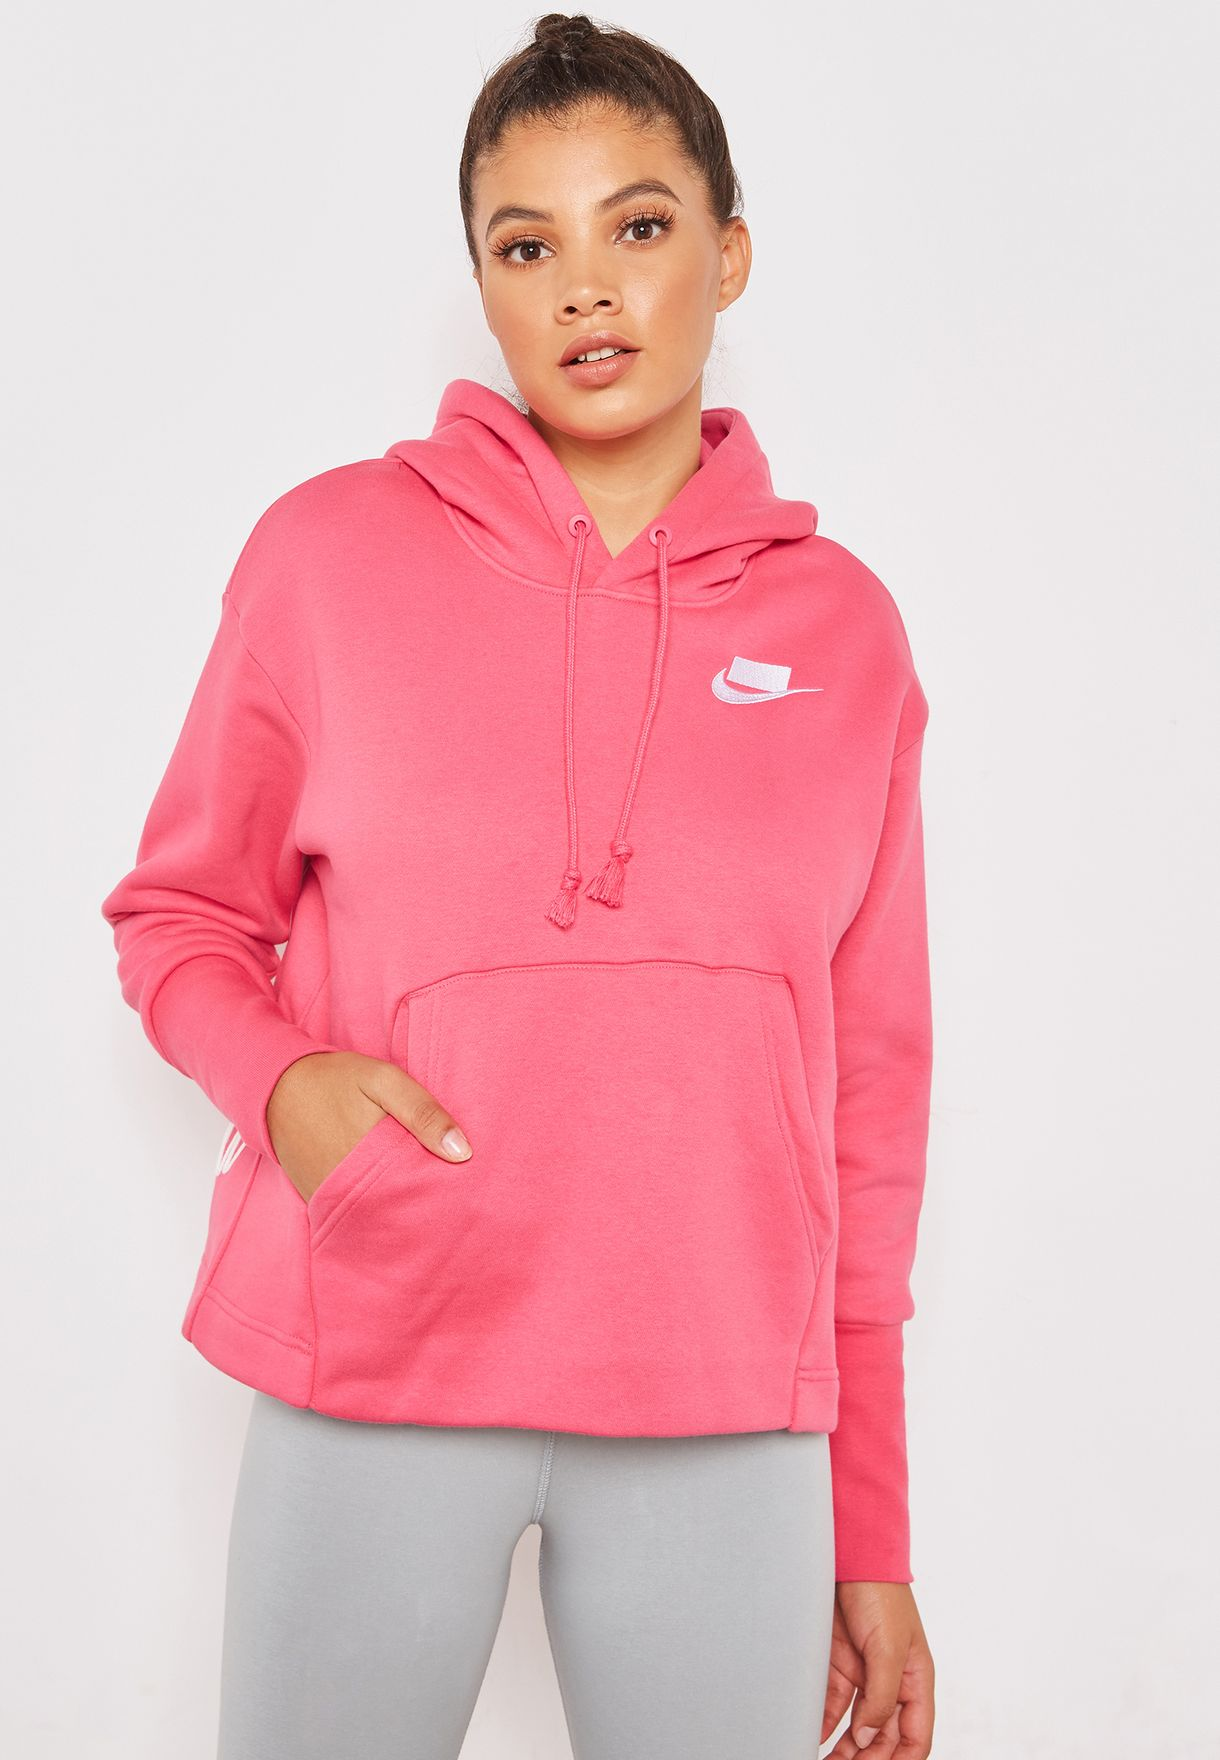 cc2f5bfc0 Shop Nike pink NSW Fleece Hoodie AH8690-674 for Women in UAE ...